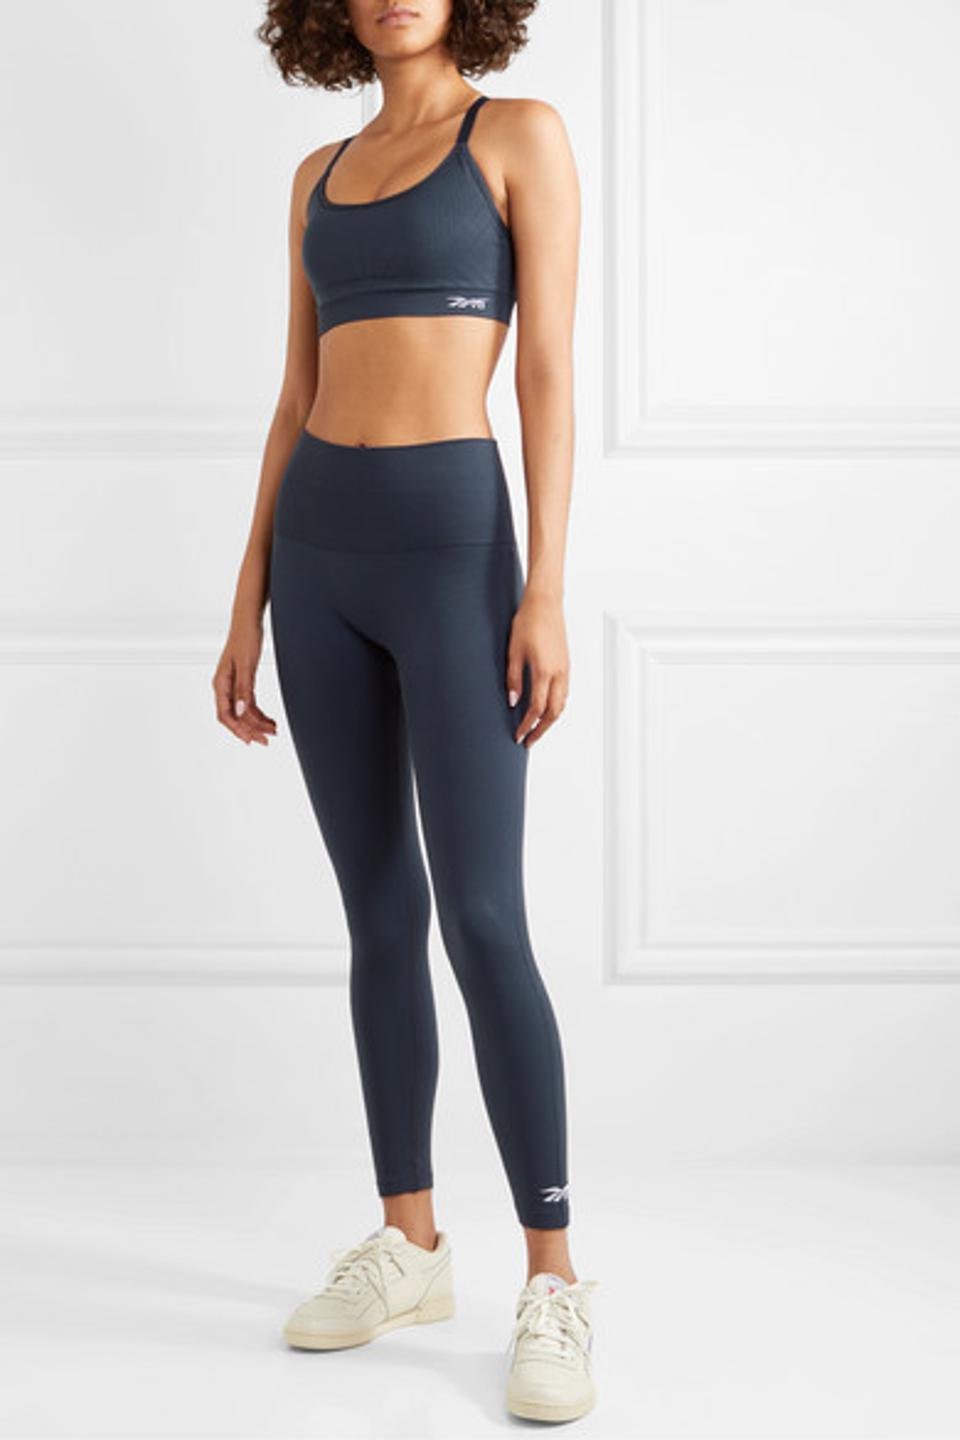 Navy Technical Stretch Knit Sports Bra and Leggings by REEBOK X VICTORIA BECKHAM